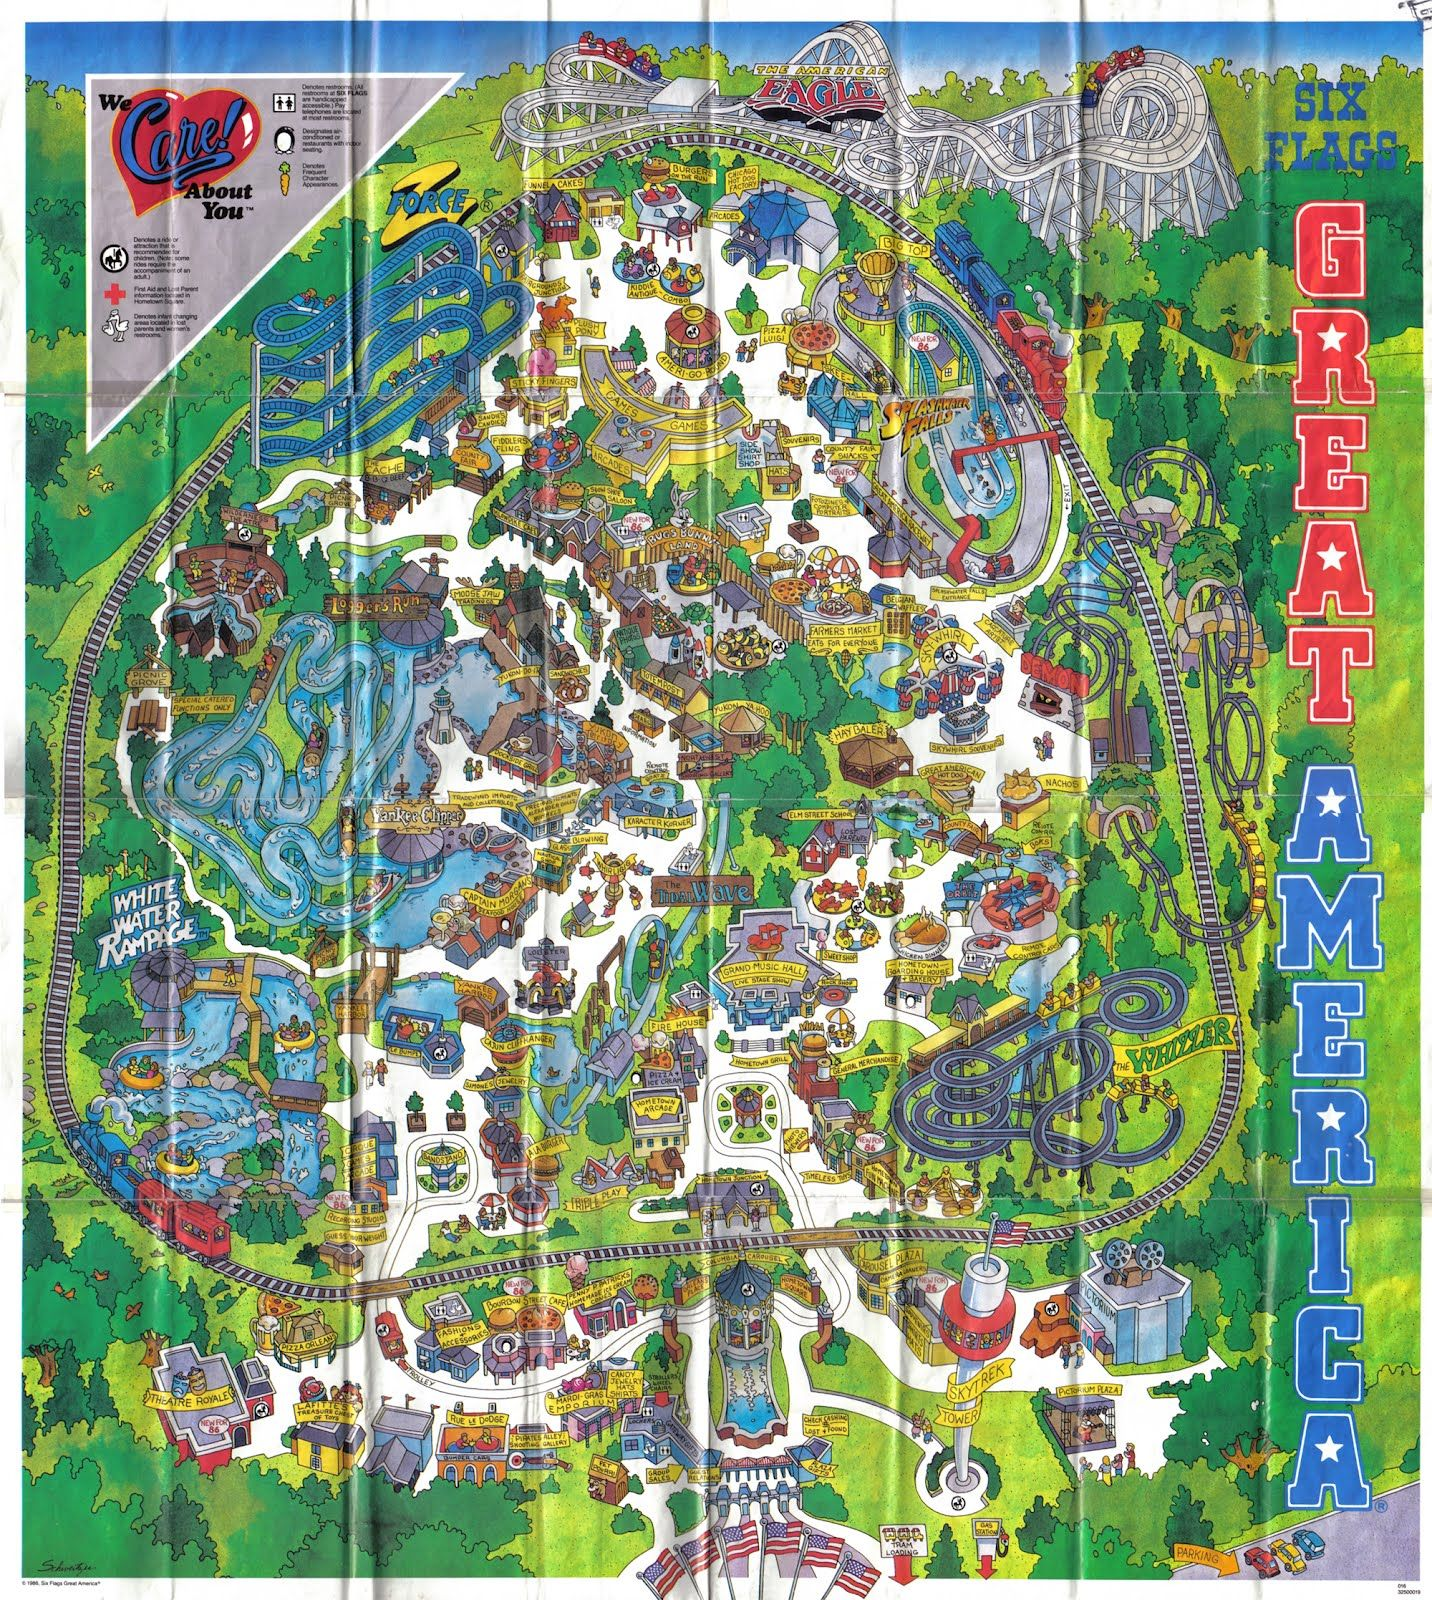 Six Flags Great America Illinois Theme Park Map America Theme Great America